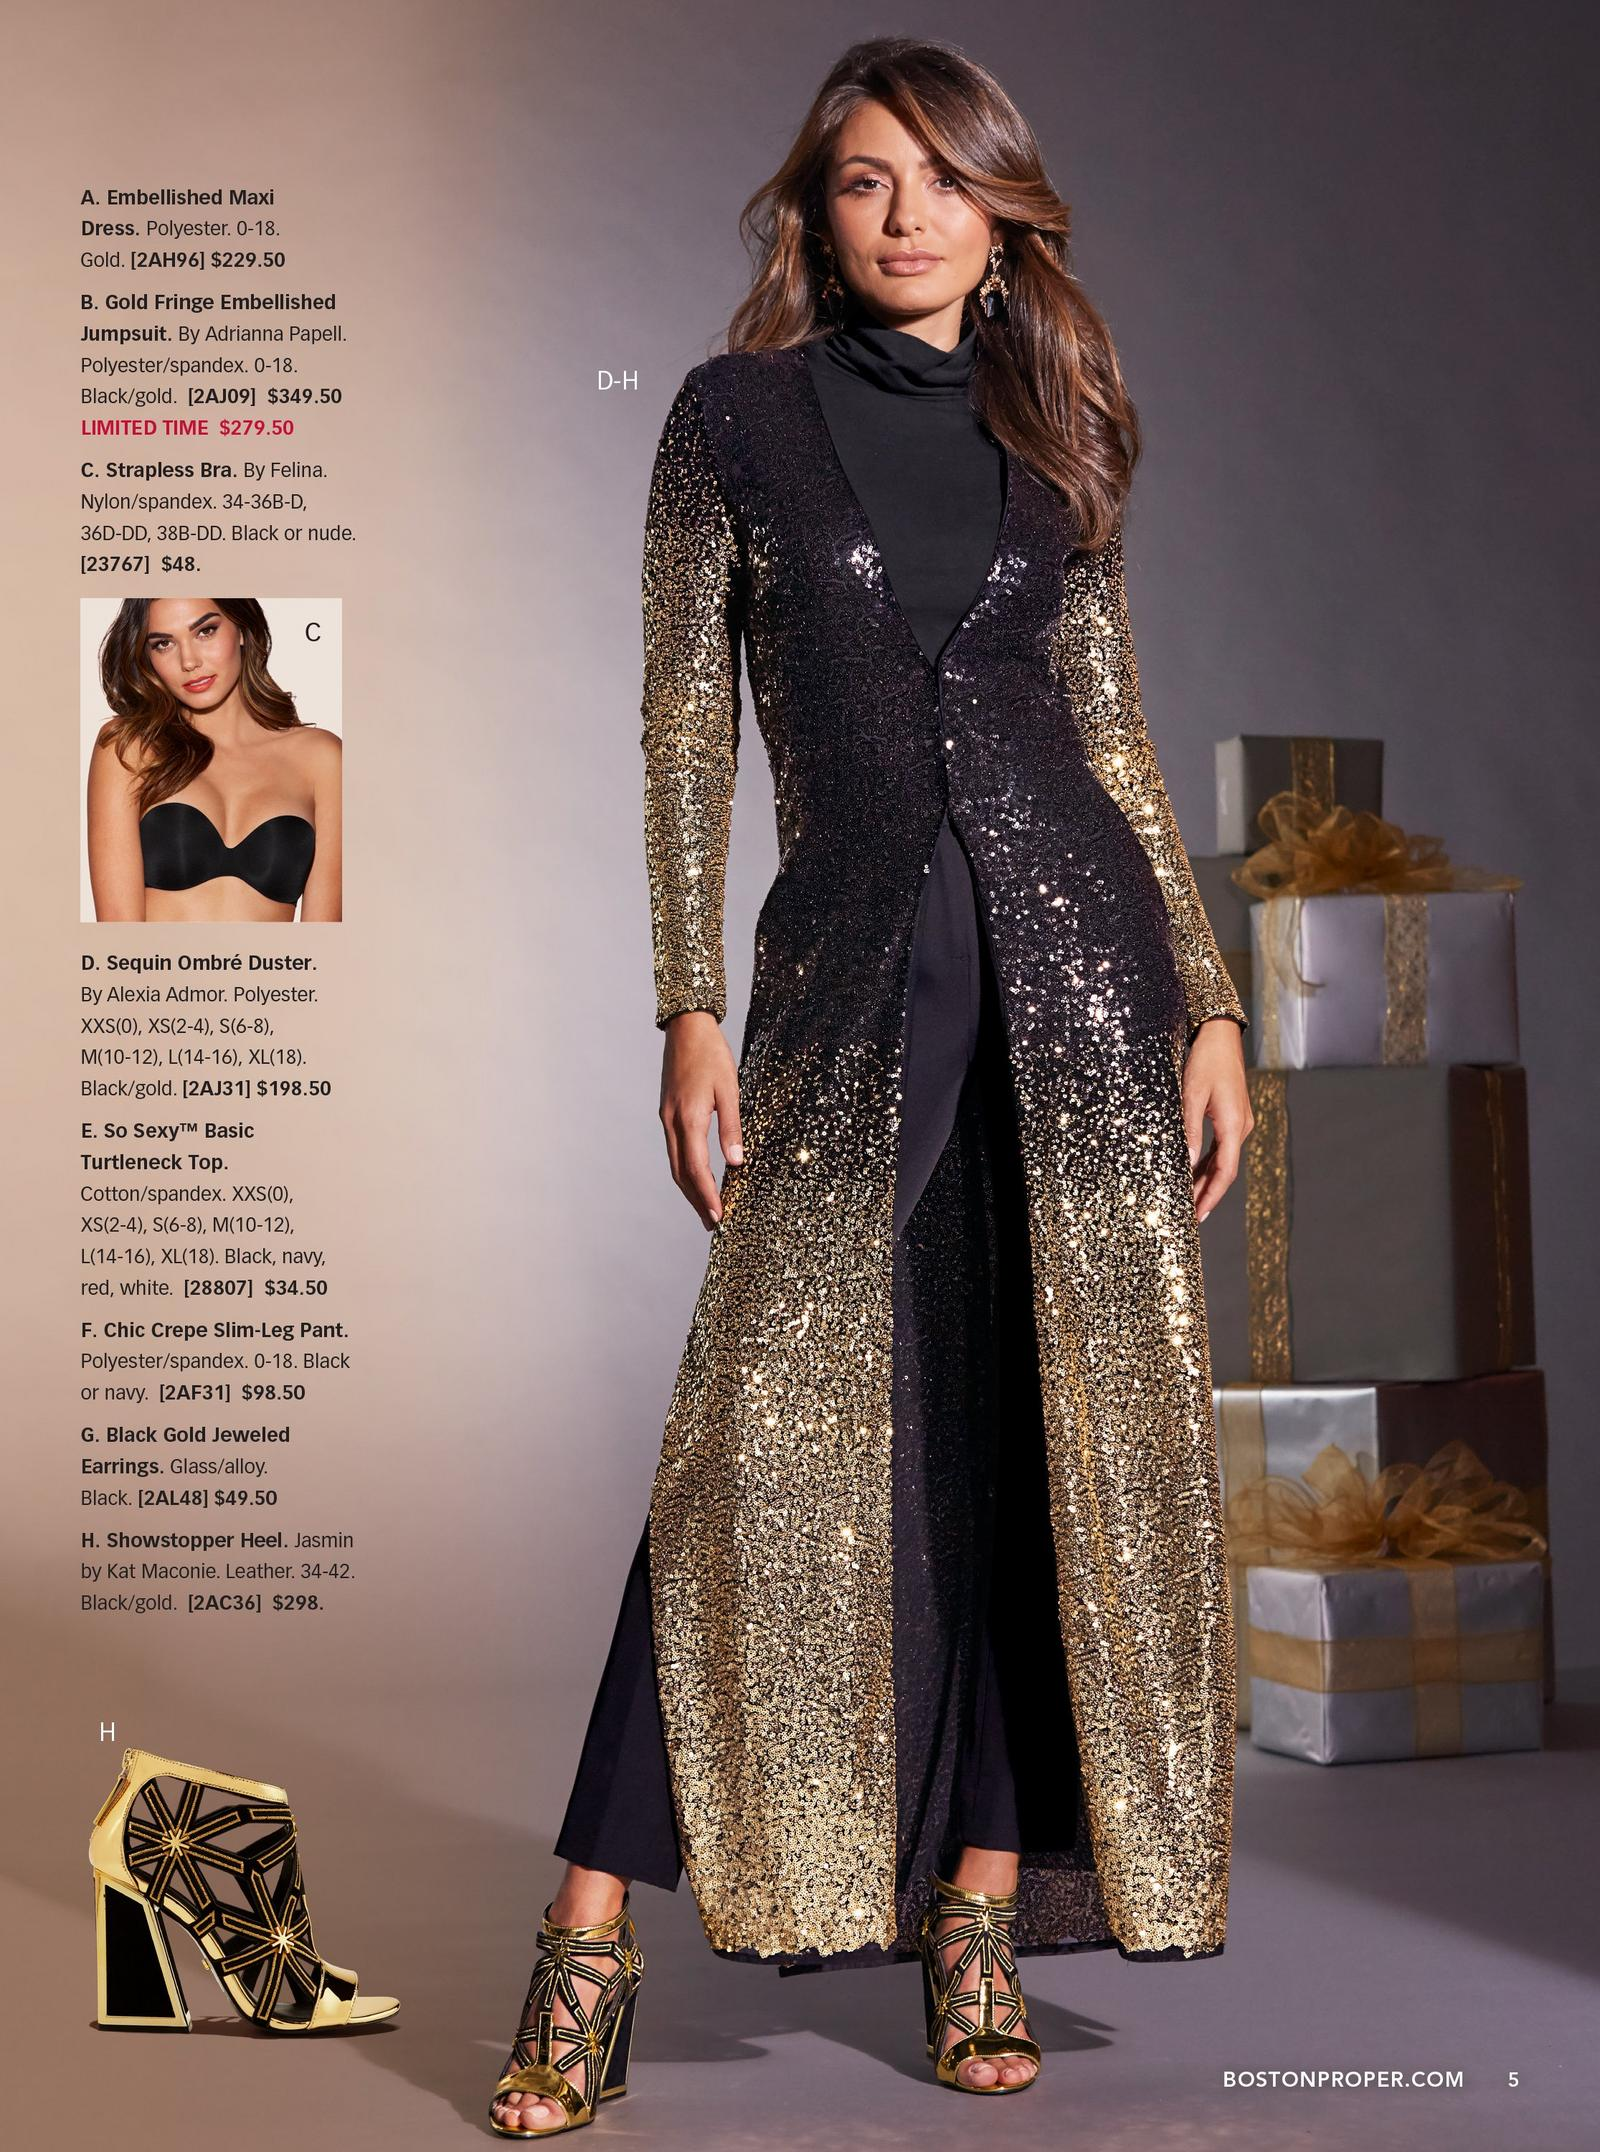 model wearing black and gold sequin ombre duster over black turtleneck top, black slim-leg pant, and black and hold heels. to the left is a silo of a black strapless bra and black and gold showstopper heel.